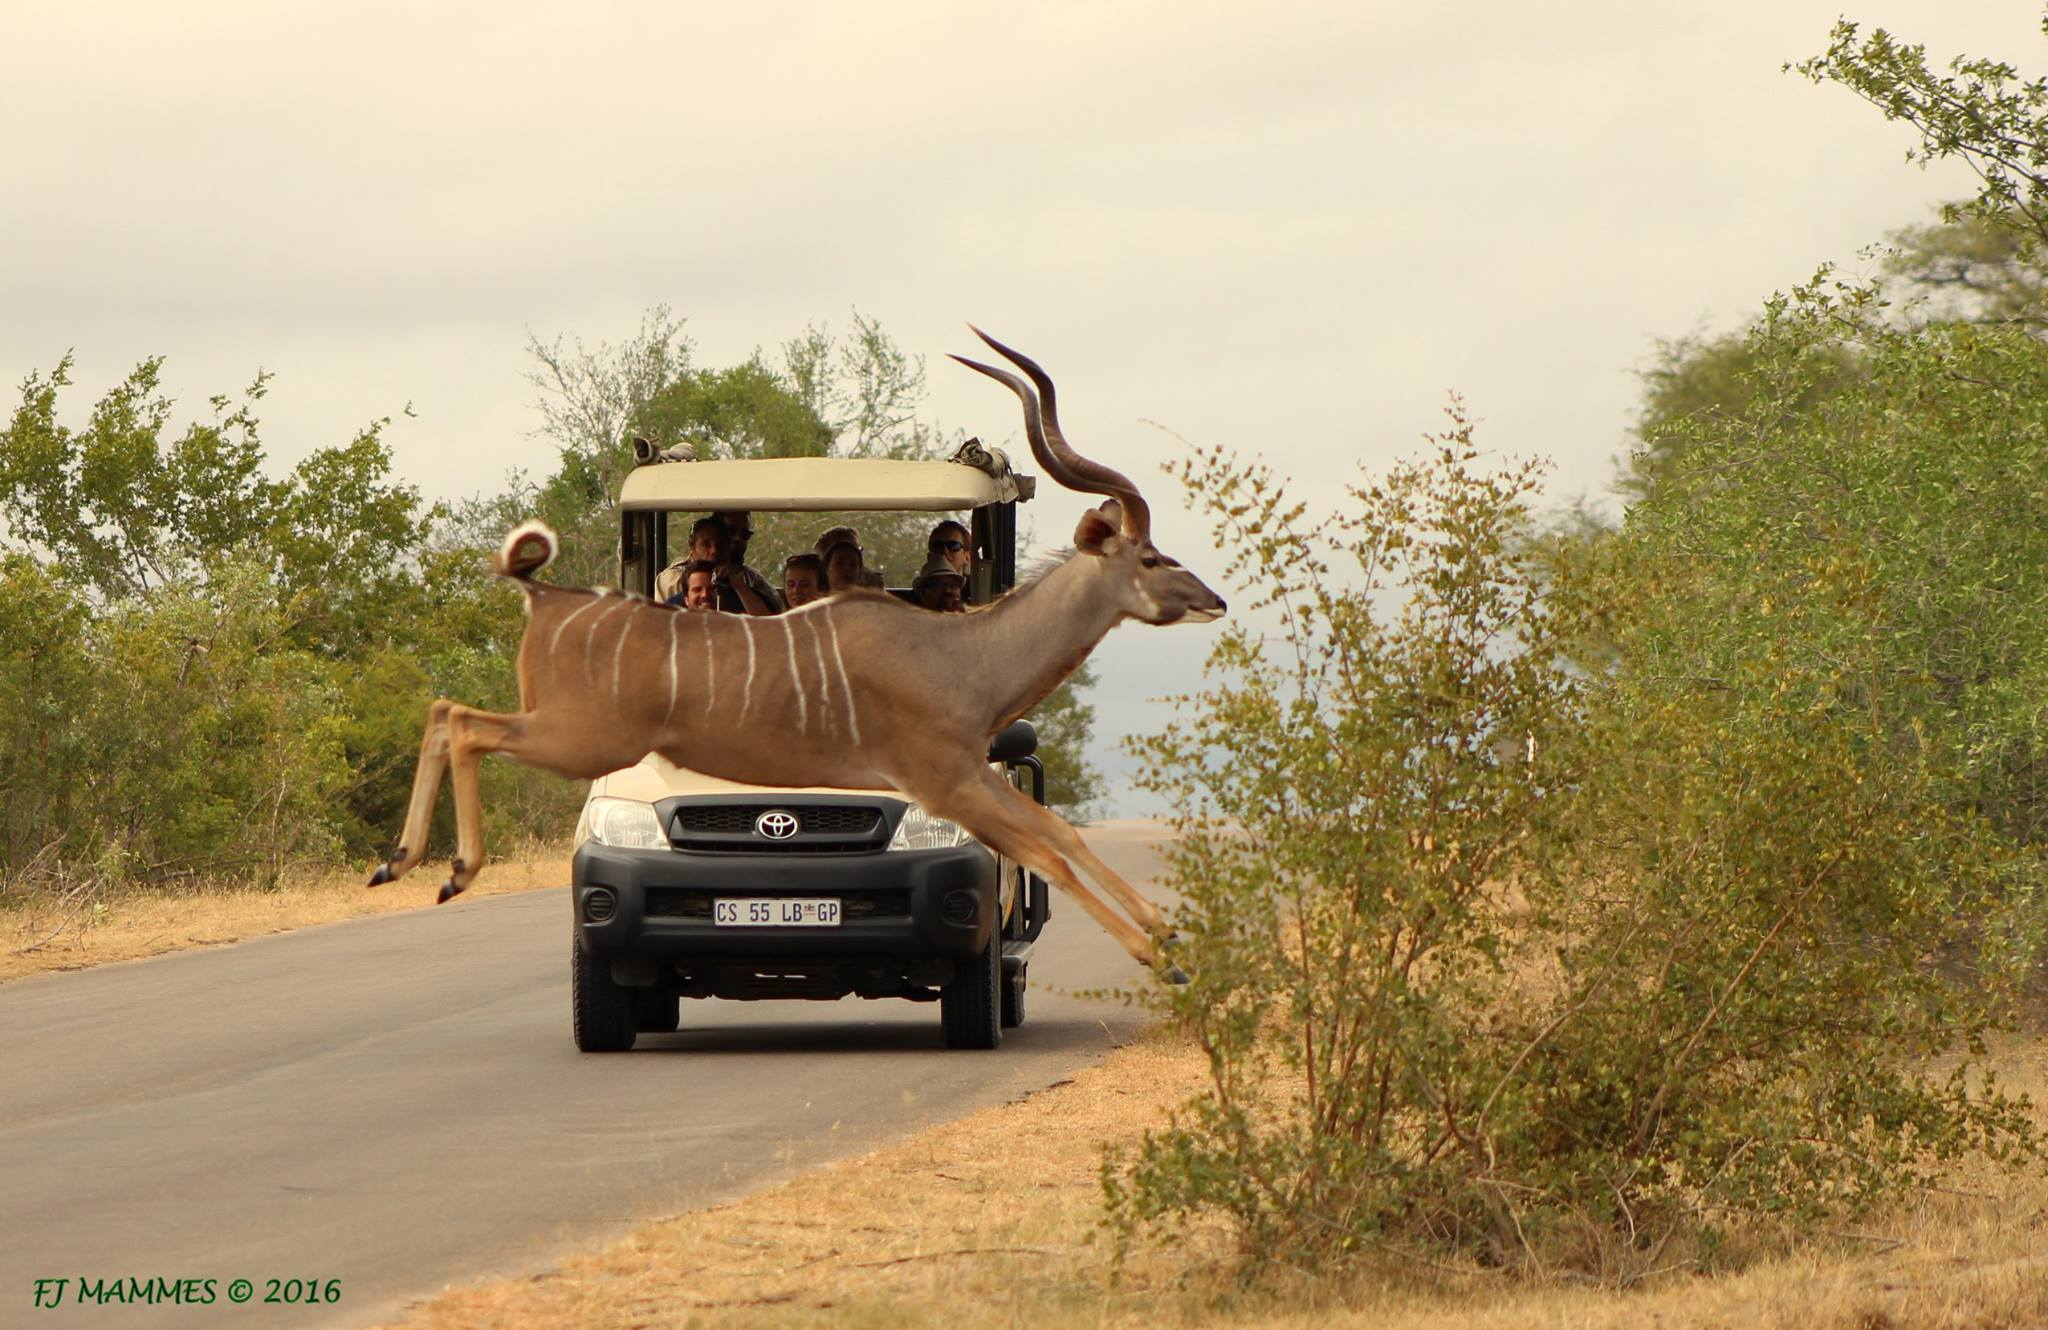 Kudo during game drive